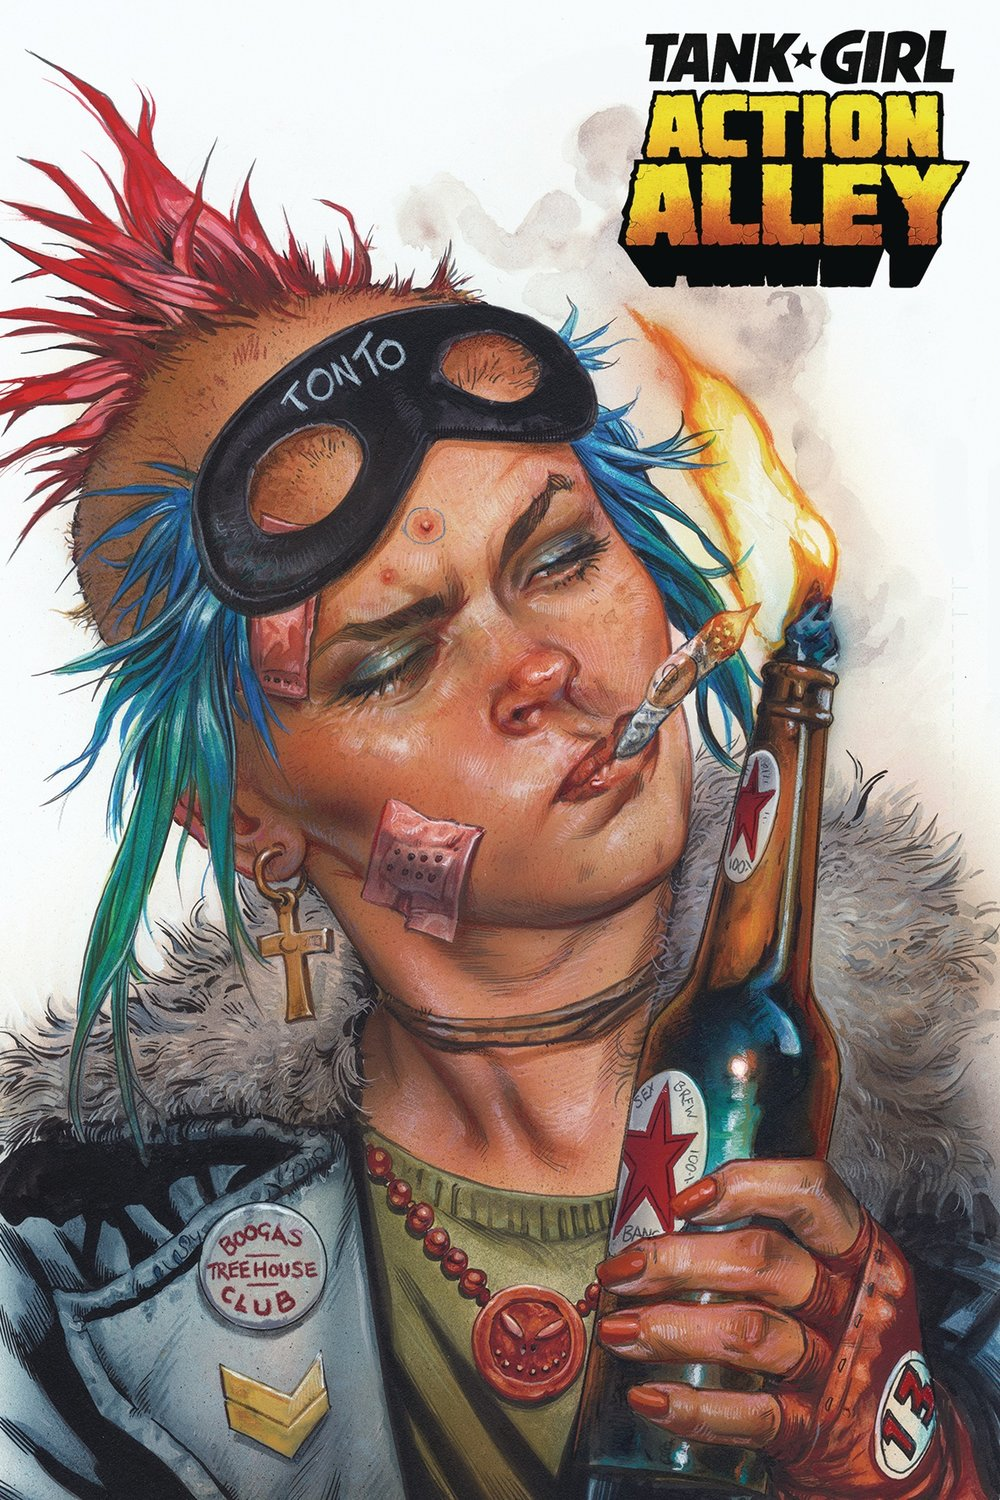 Tank Girl Action Alley #1